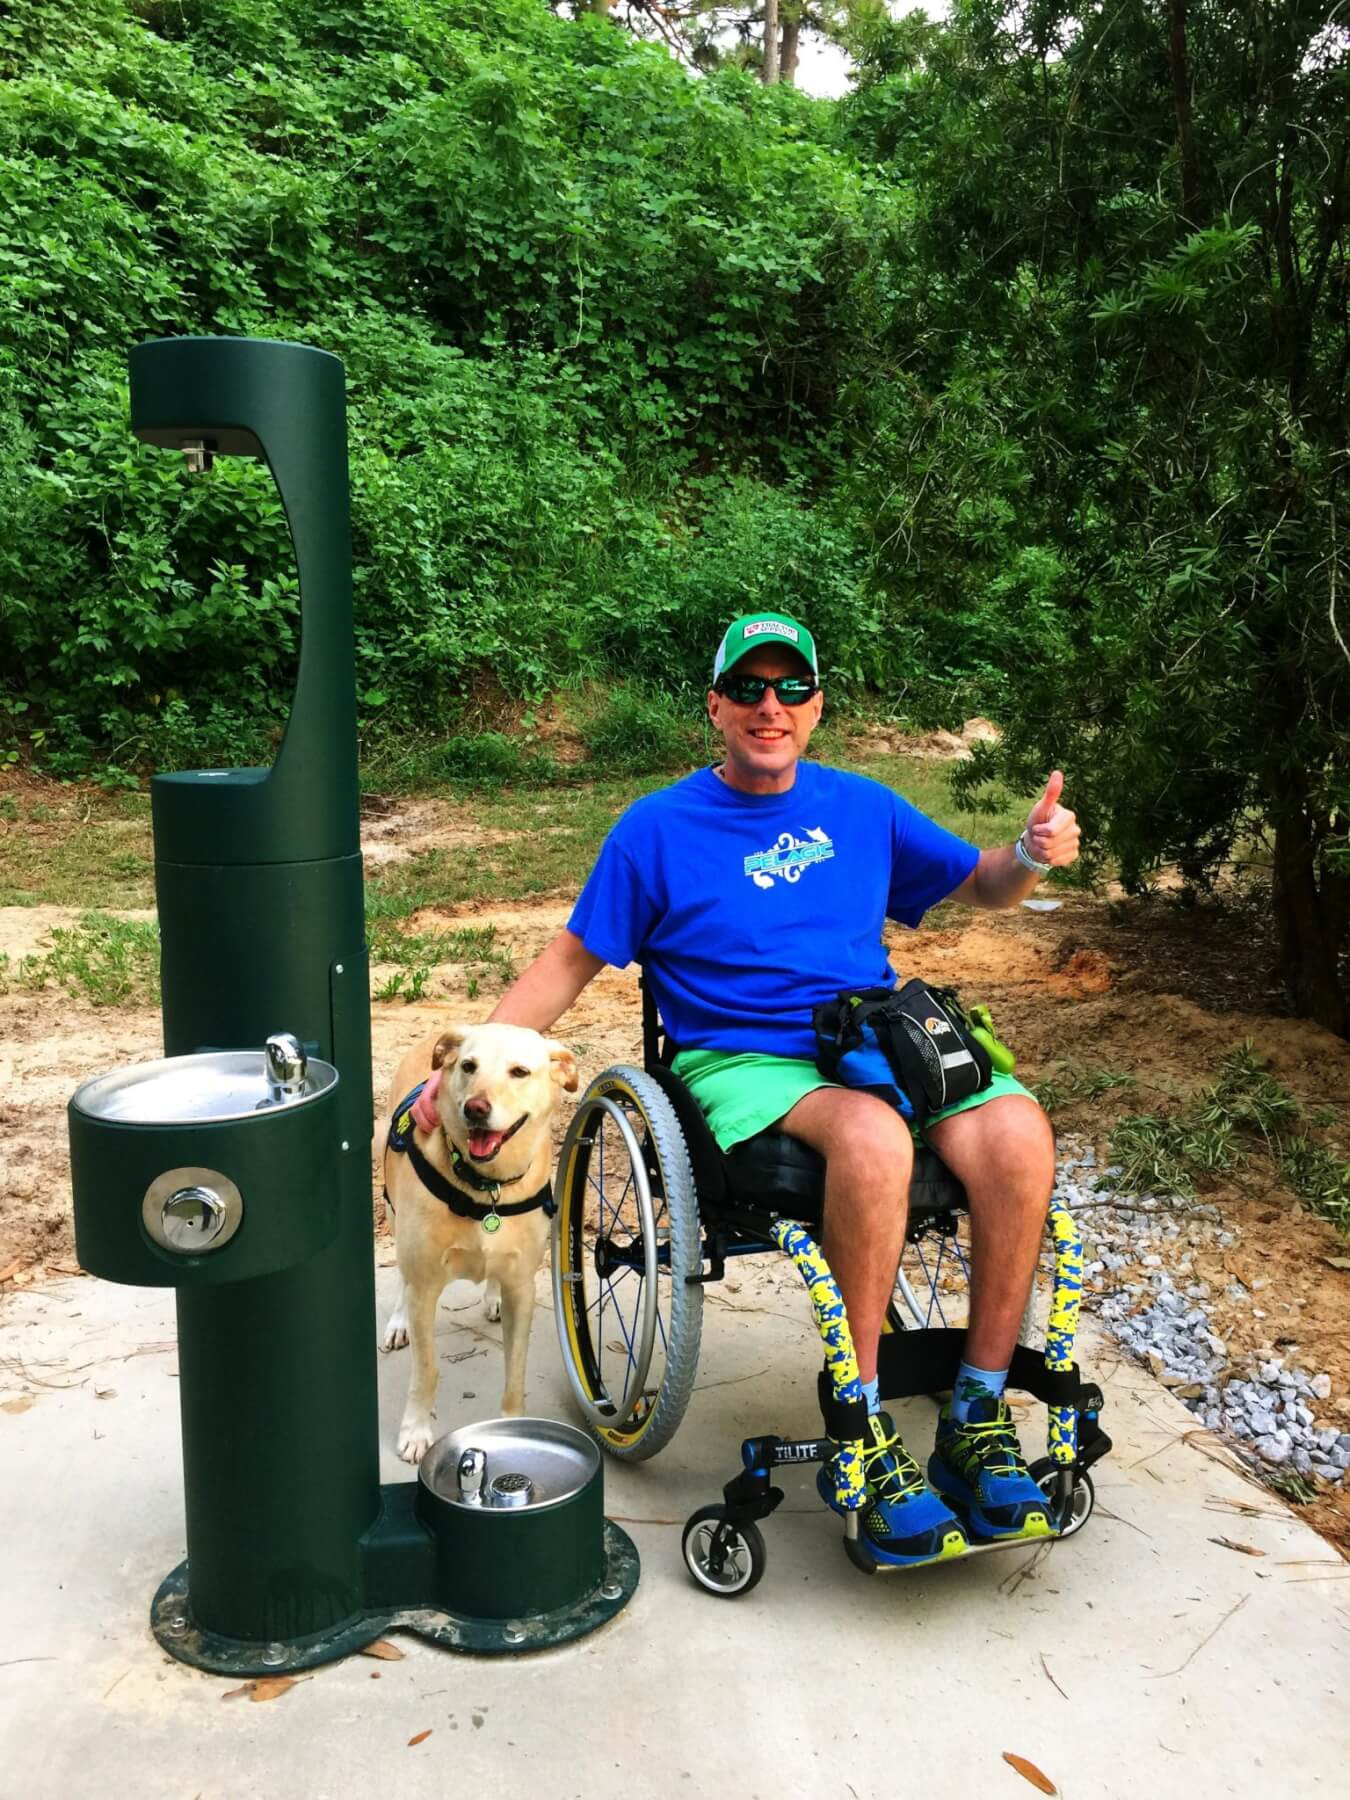 Fairhope opens dog friendly water station at pier